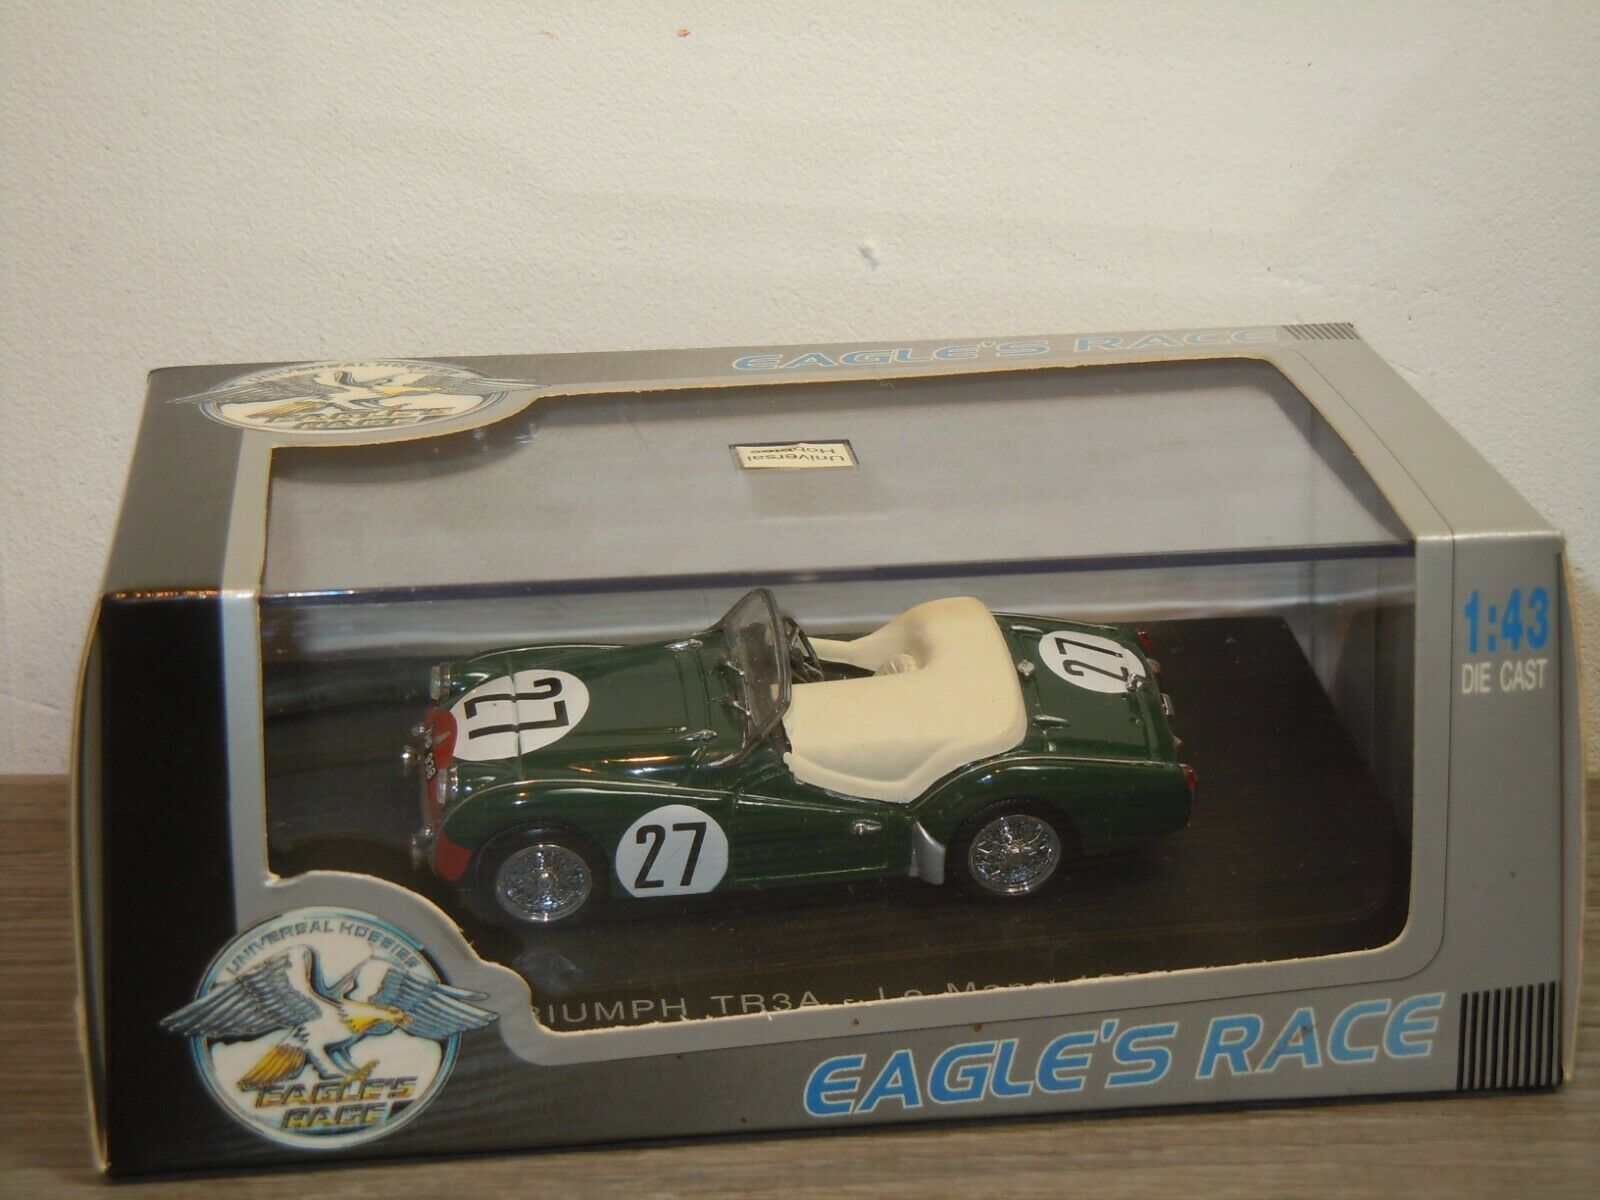 Triumph TR3A LeMans 1959 - Eagle's Race 1 43 43 43 in Box 37205 c91819